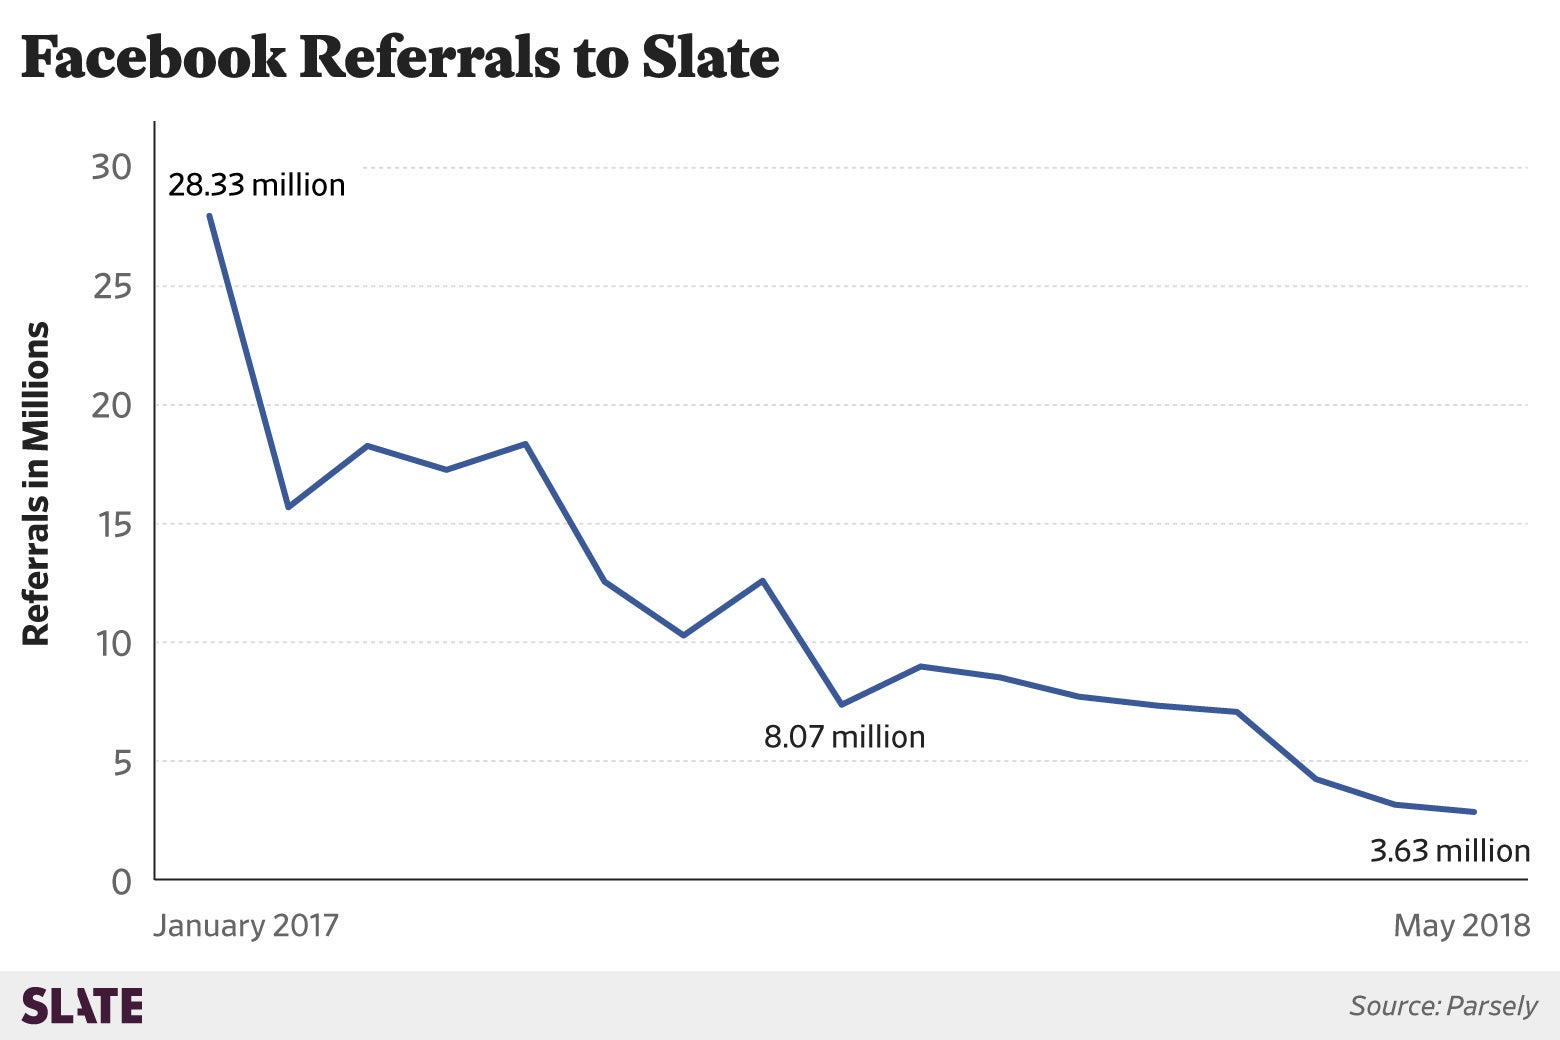 A charts shows Facebook referrals to Slate: The trend is downward from 28 million to 3.6 million.